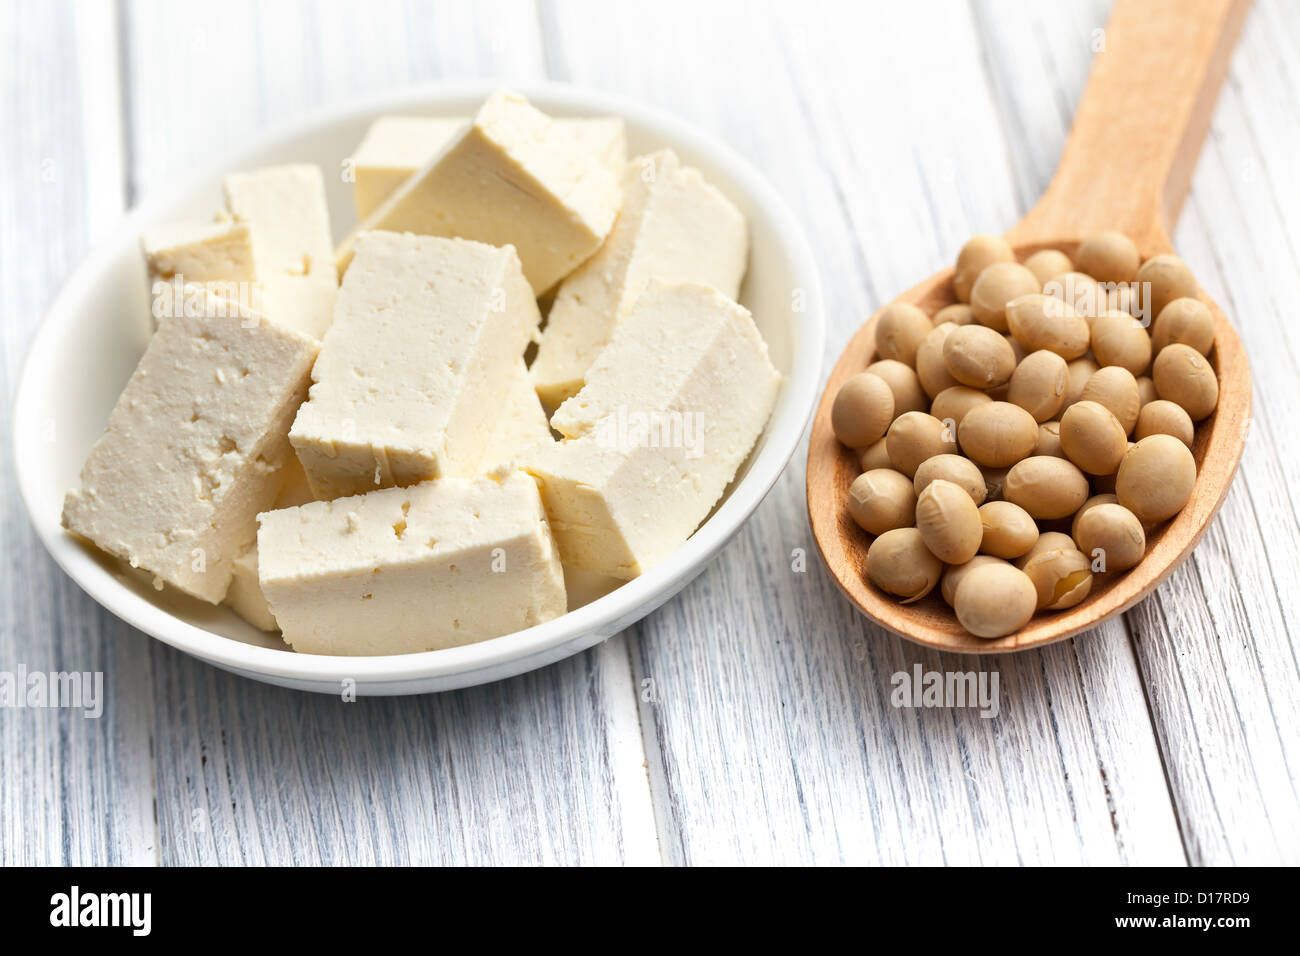 tofu and soy beans on kitchen table - Stock Image